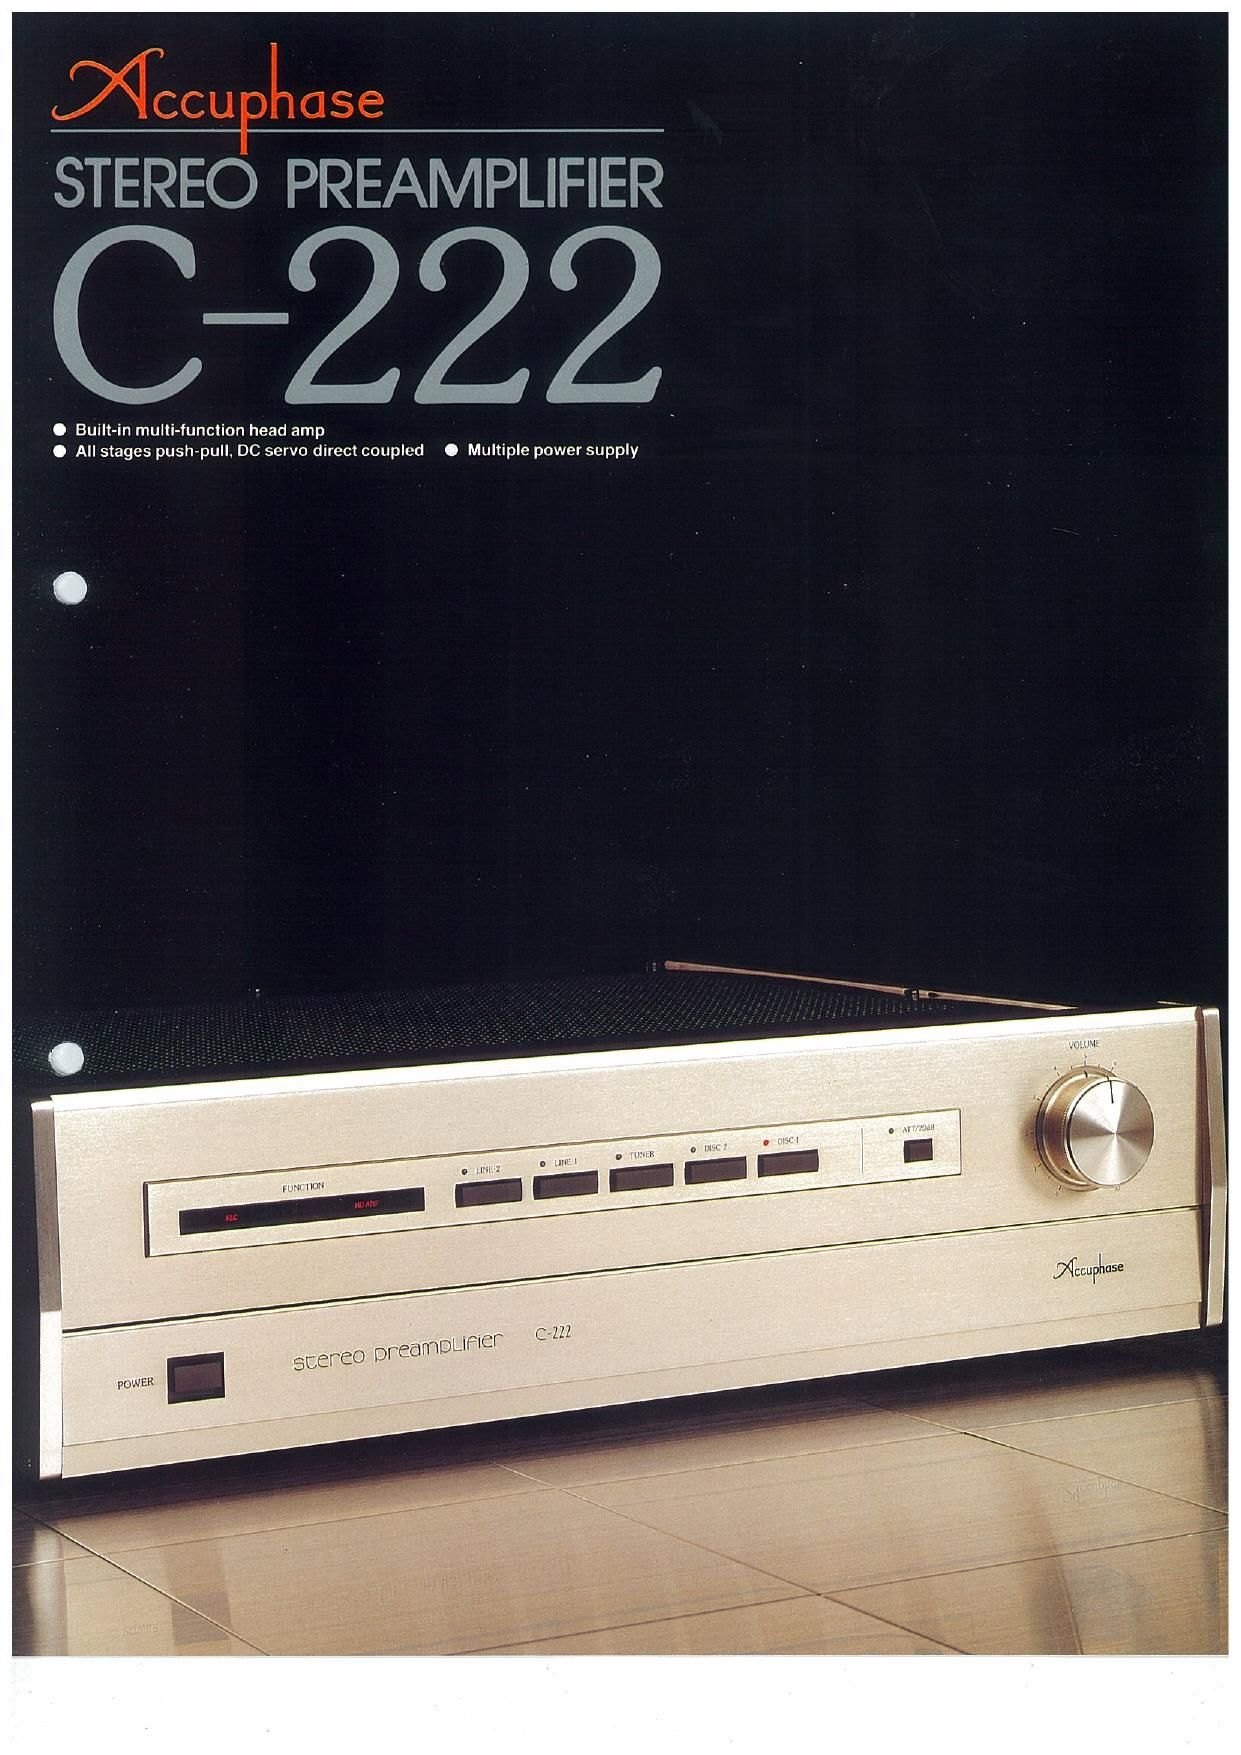 Accuphase C 222 Brochure